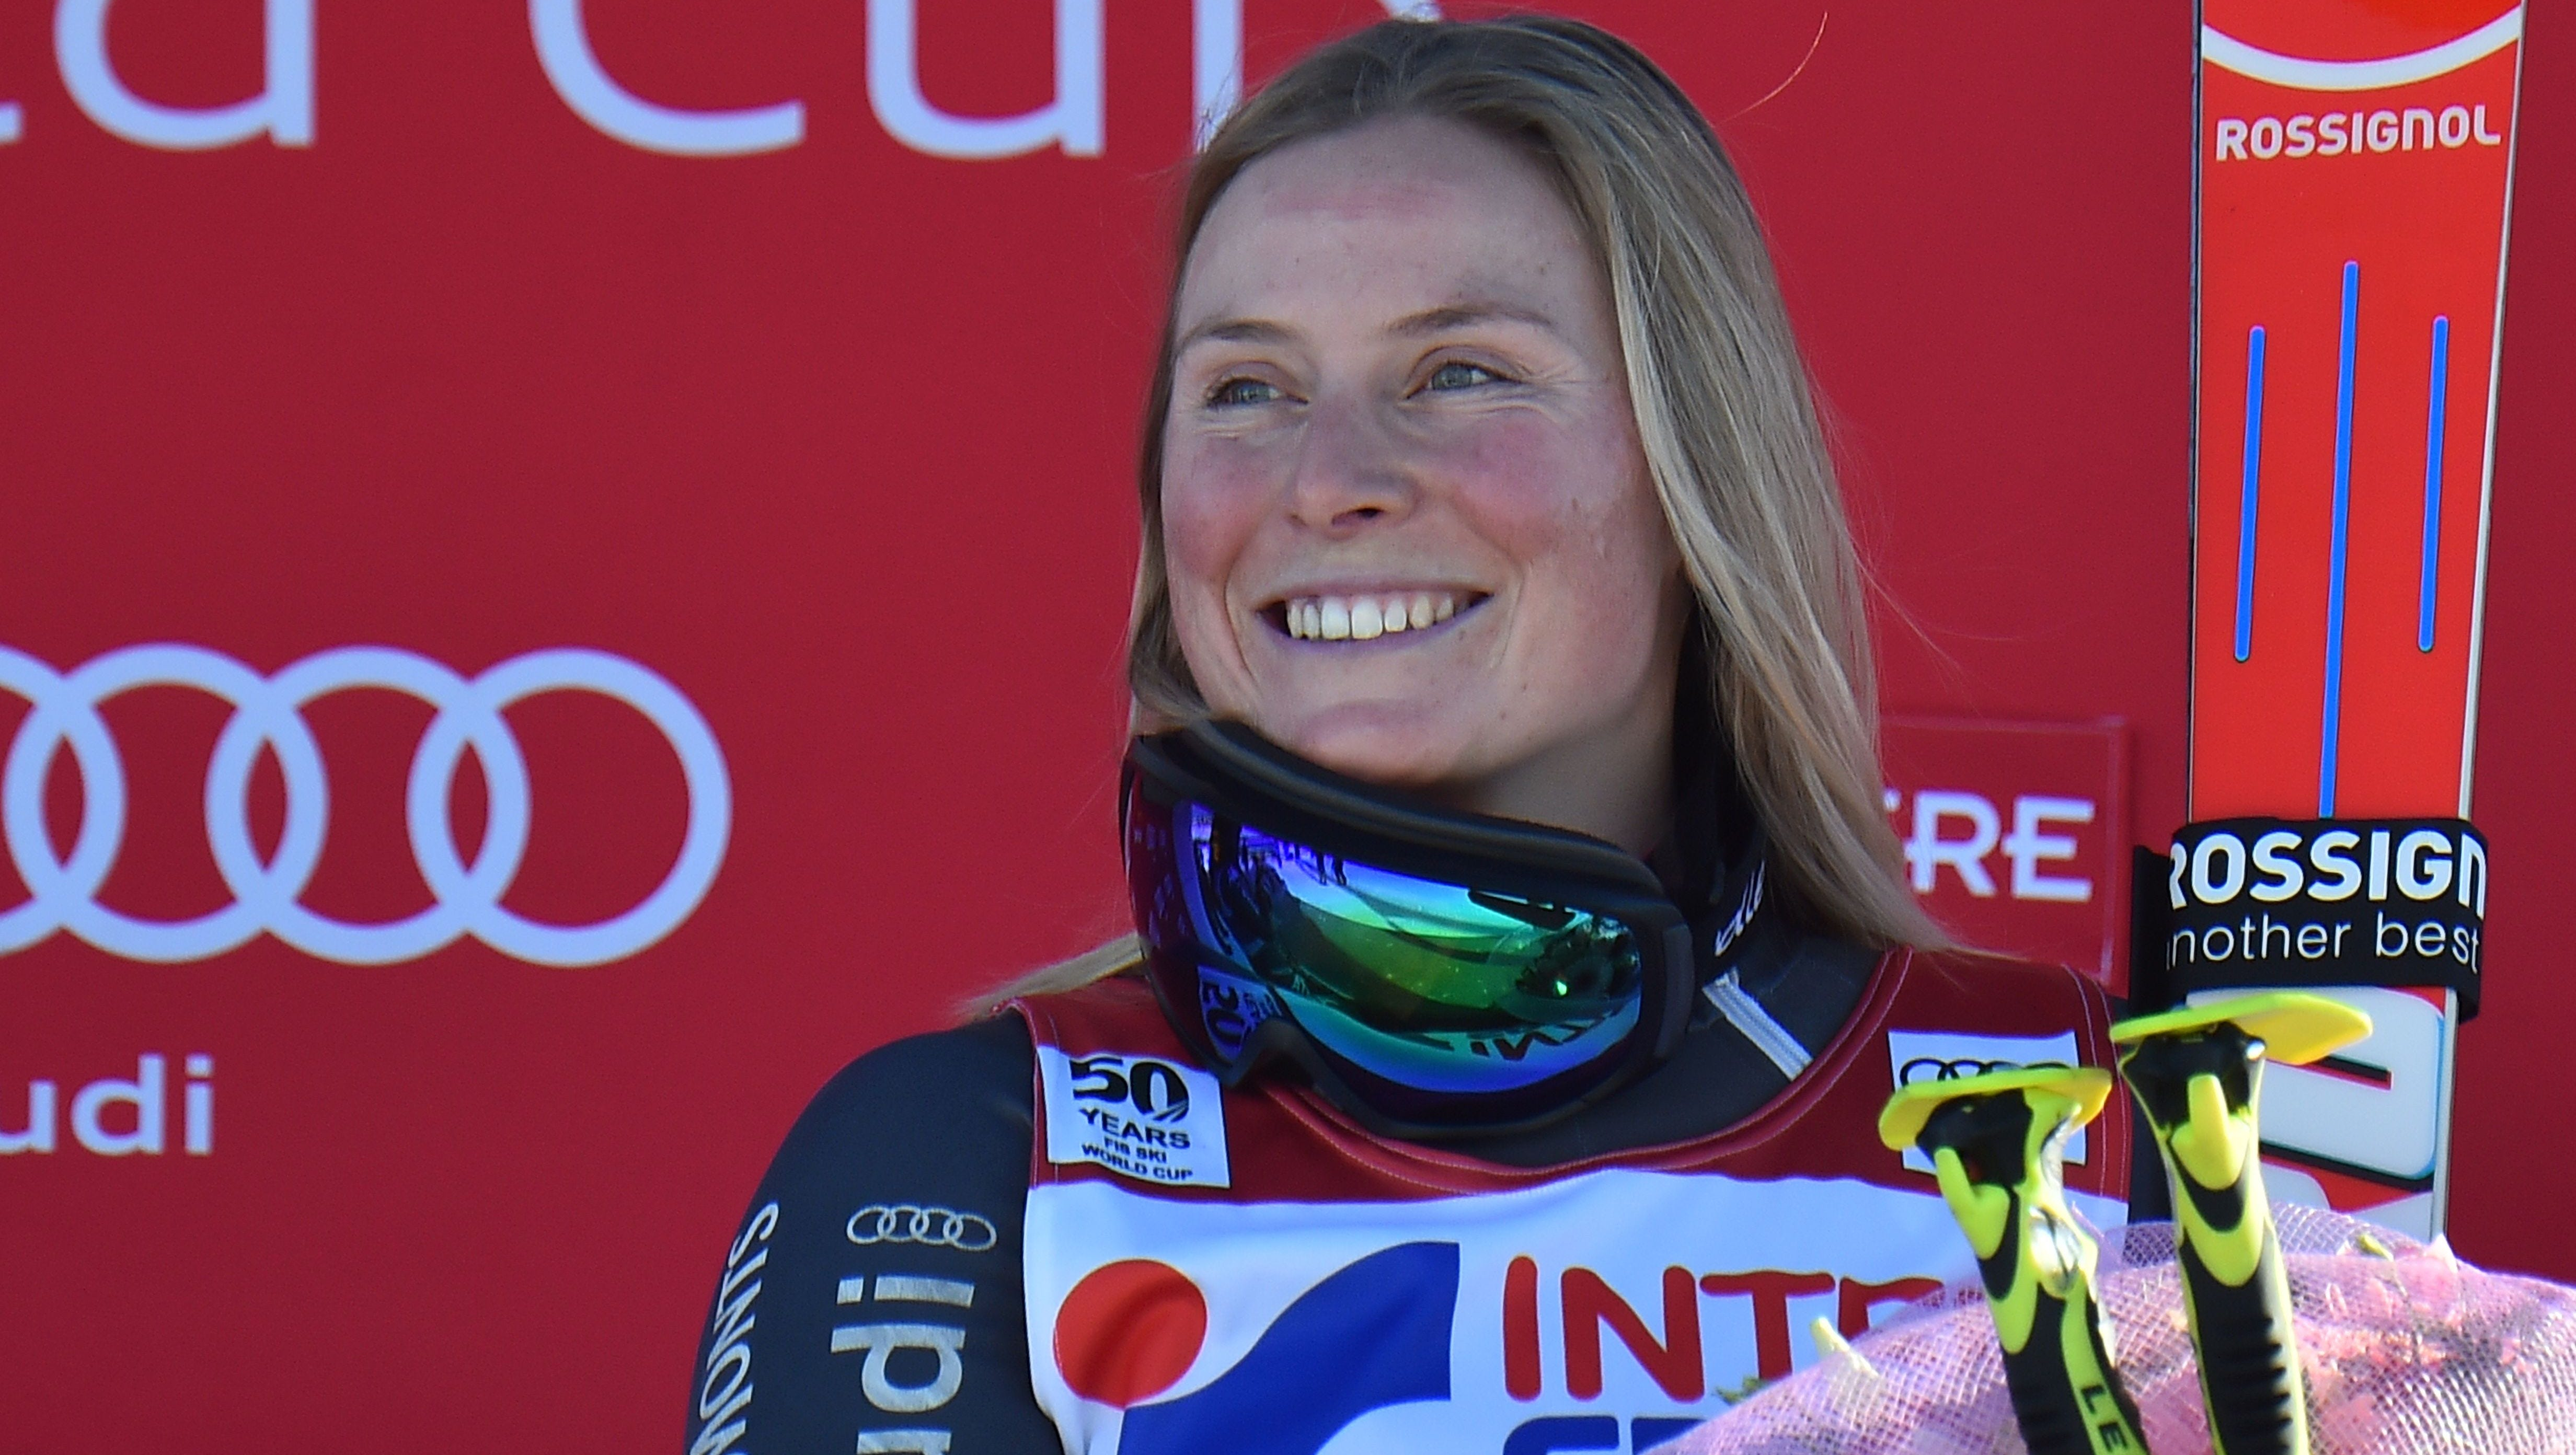 France S Tessa Worley Wins 2nd Straight Giant Slalom As Shiffrin Loses Lead